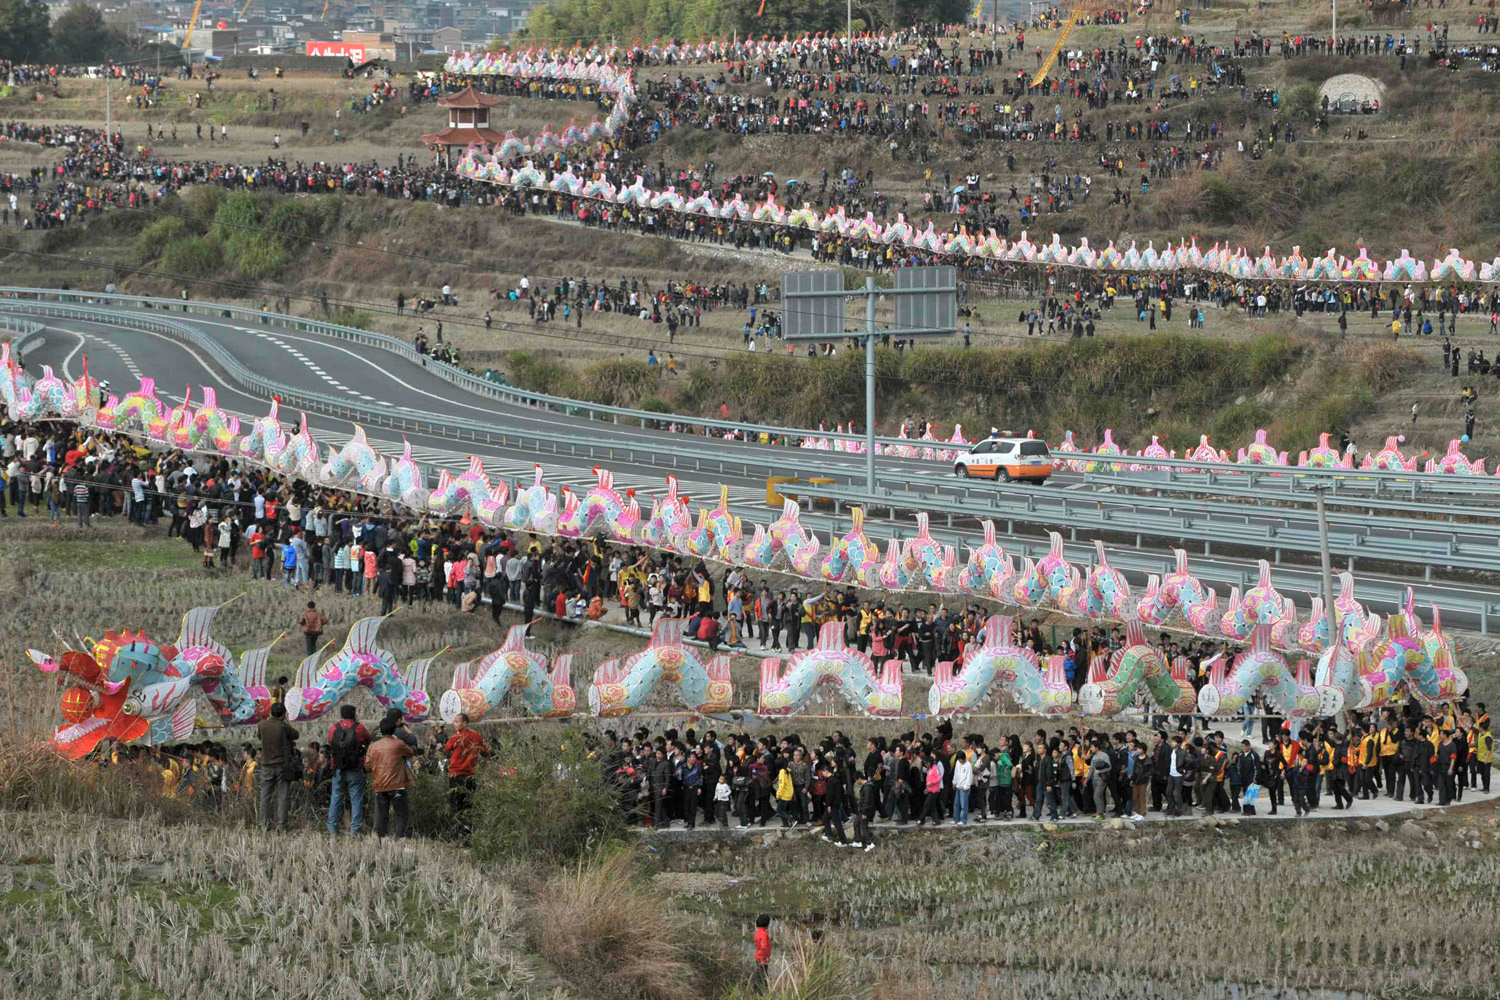 February 6, 2012. Villagers perform the annual  dragon march  to celebrate the Lantern Festival in Gutian township, Fujian province, China.